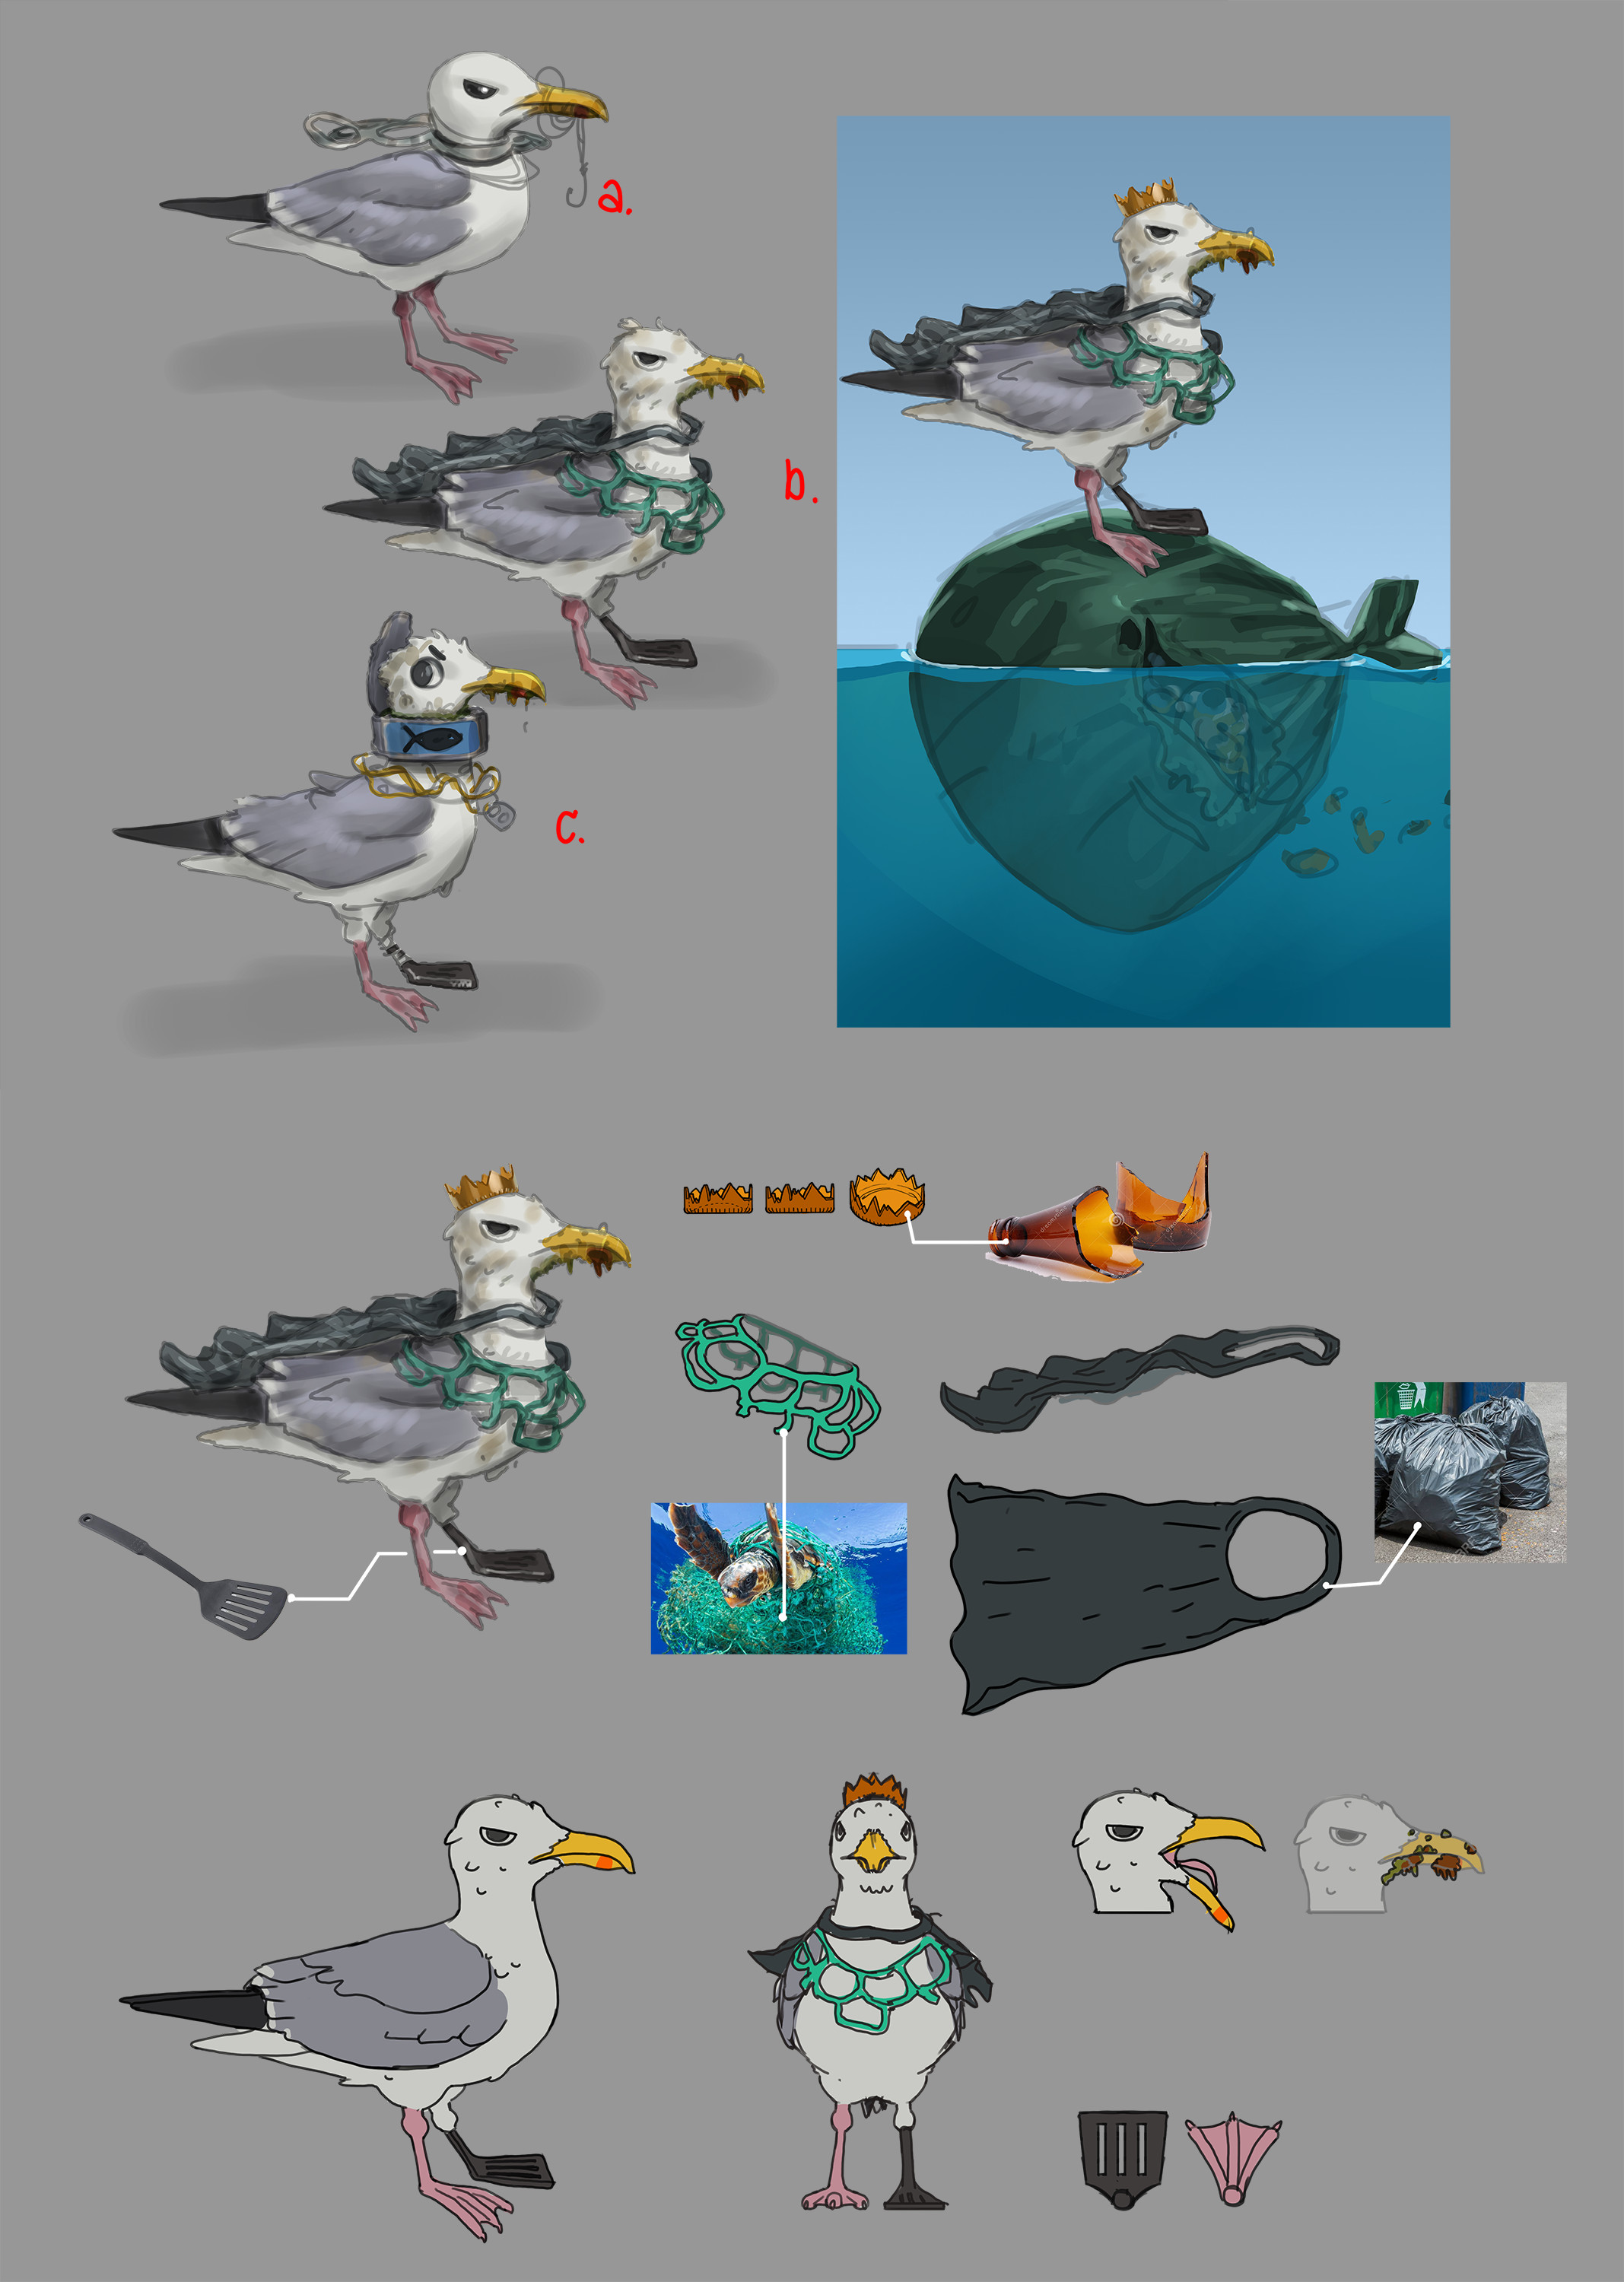 Villain Concept and breakdown  The villain represented pollution by becoming corrupted by man-made garbage and living on and spreading trash.